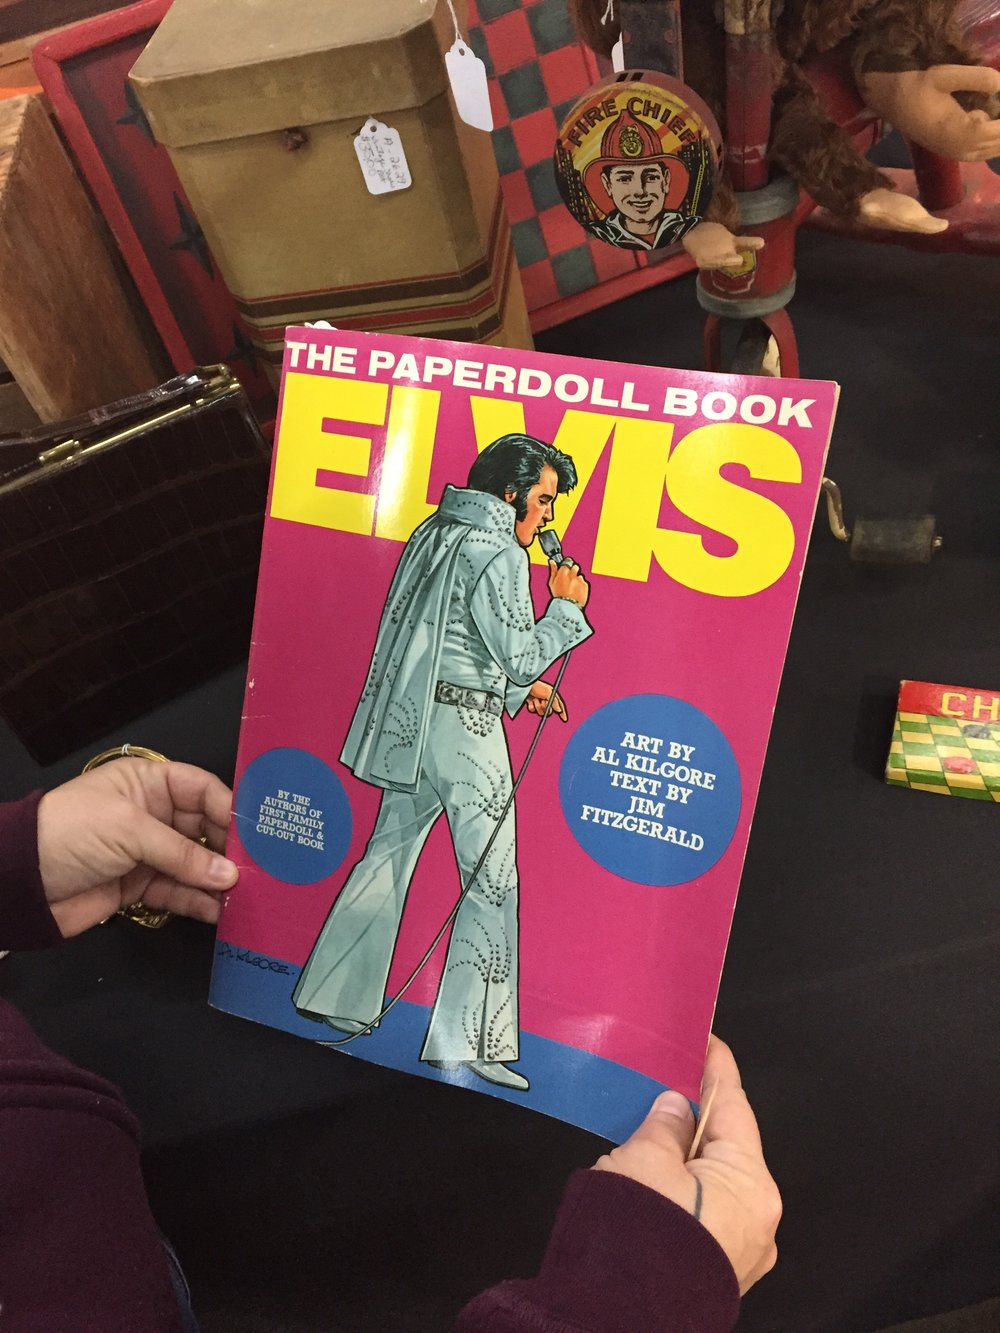 elvis paper doll book.